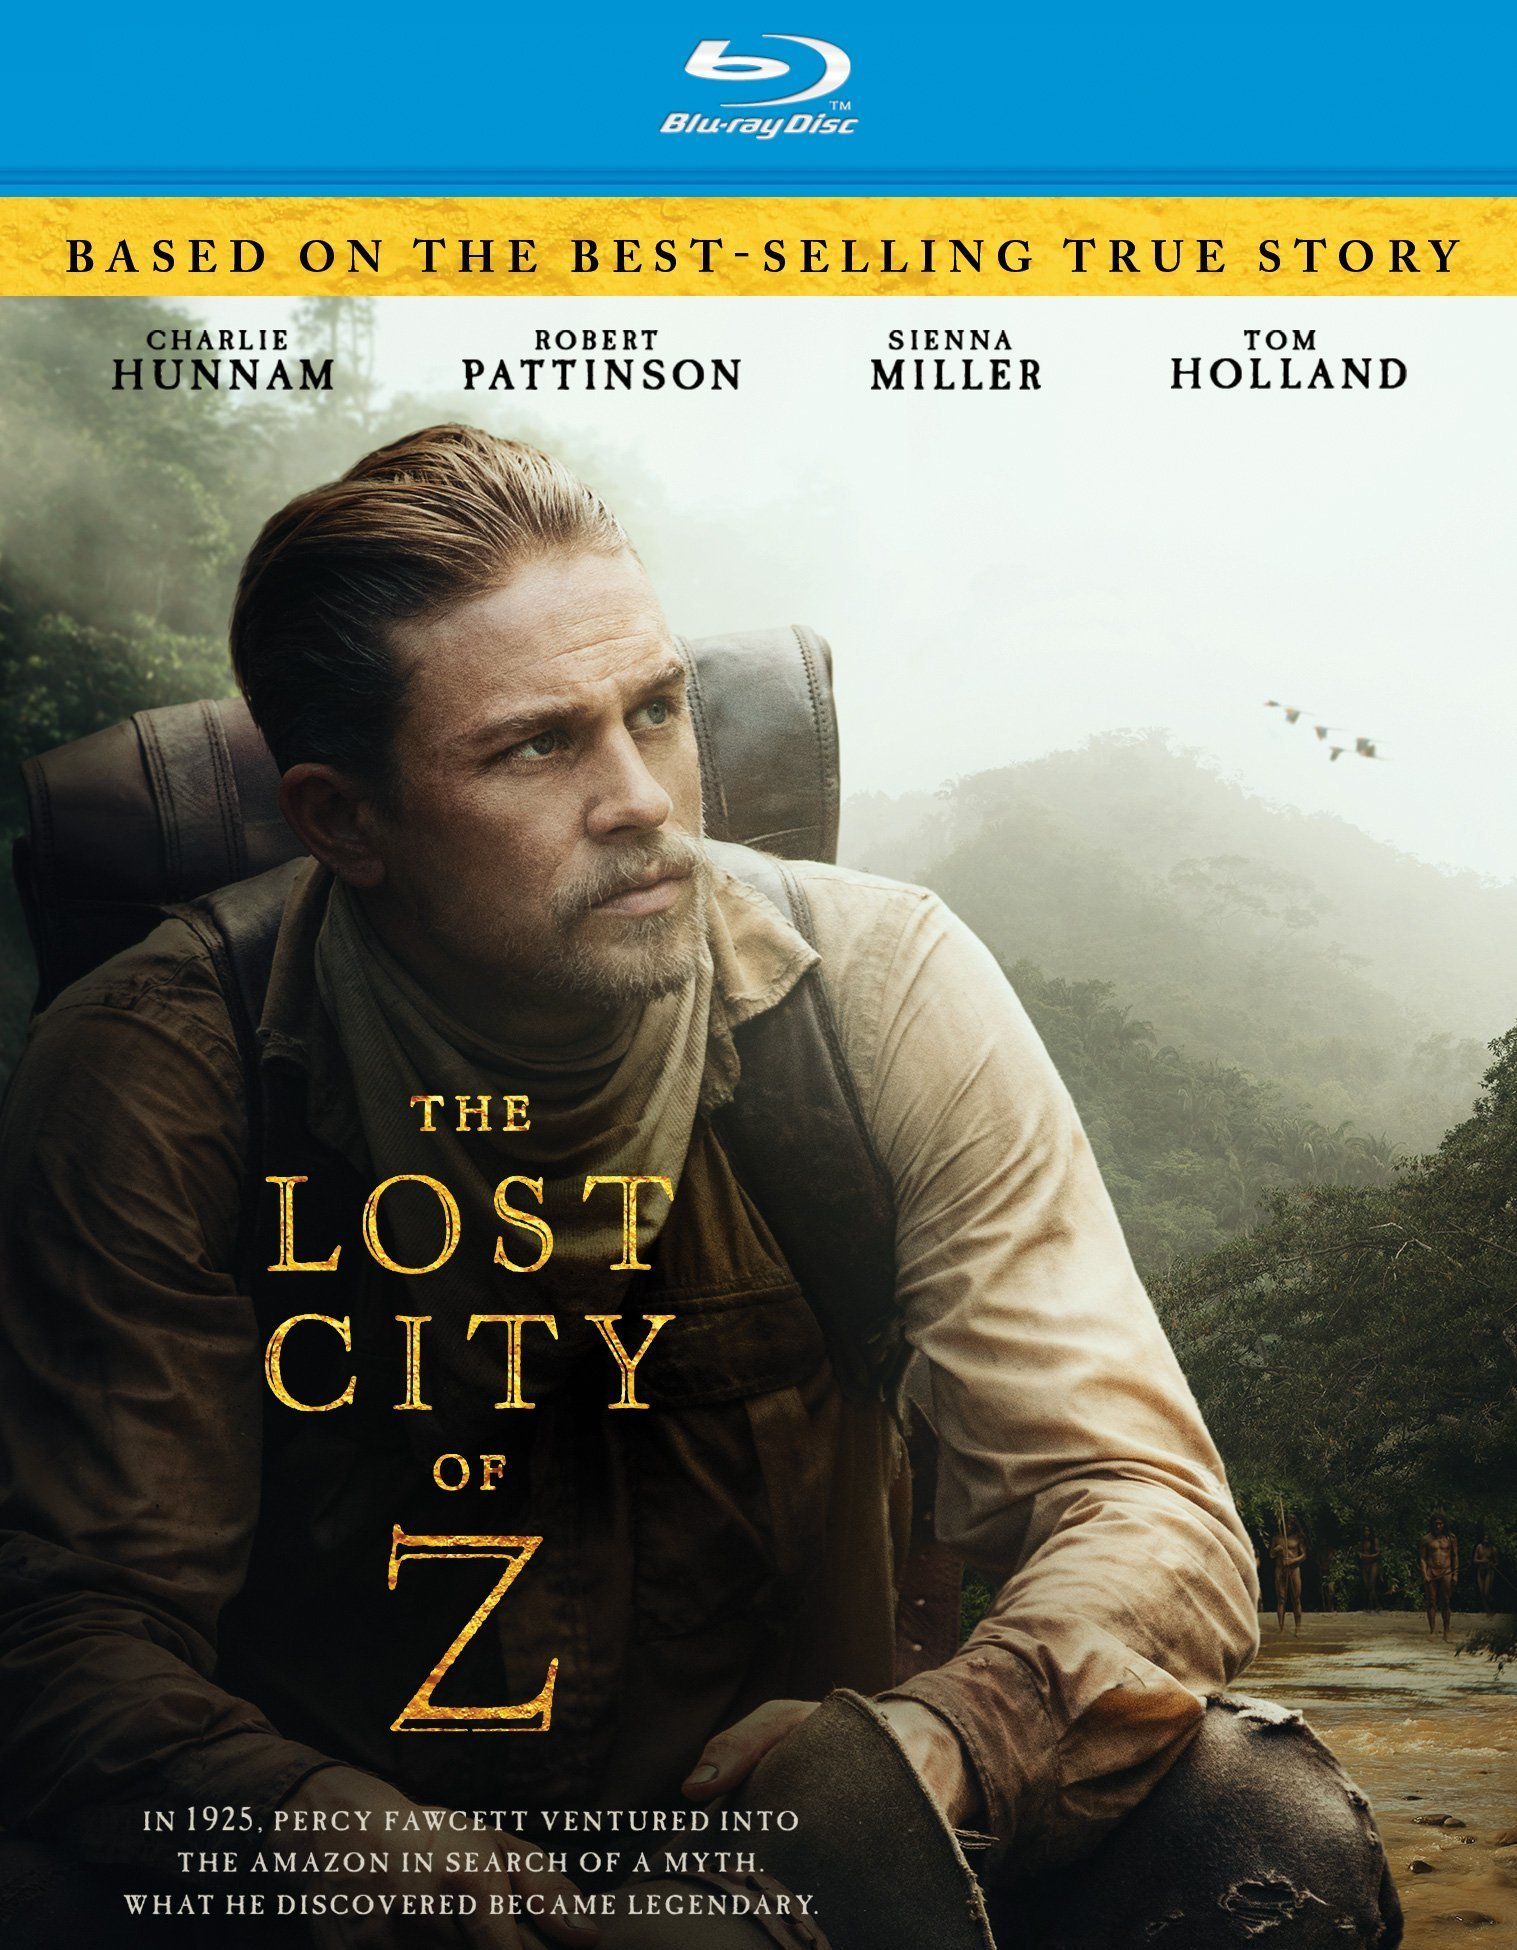 The Lost City of Z (2016) poster image